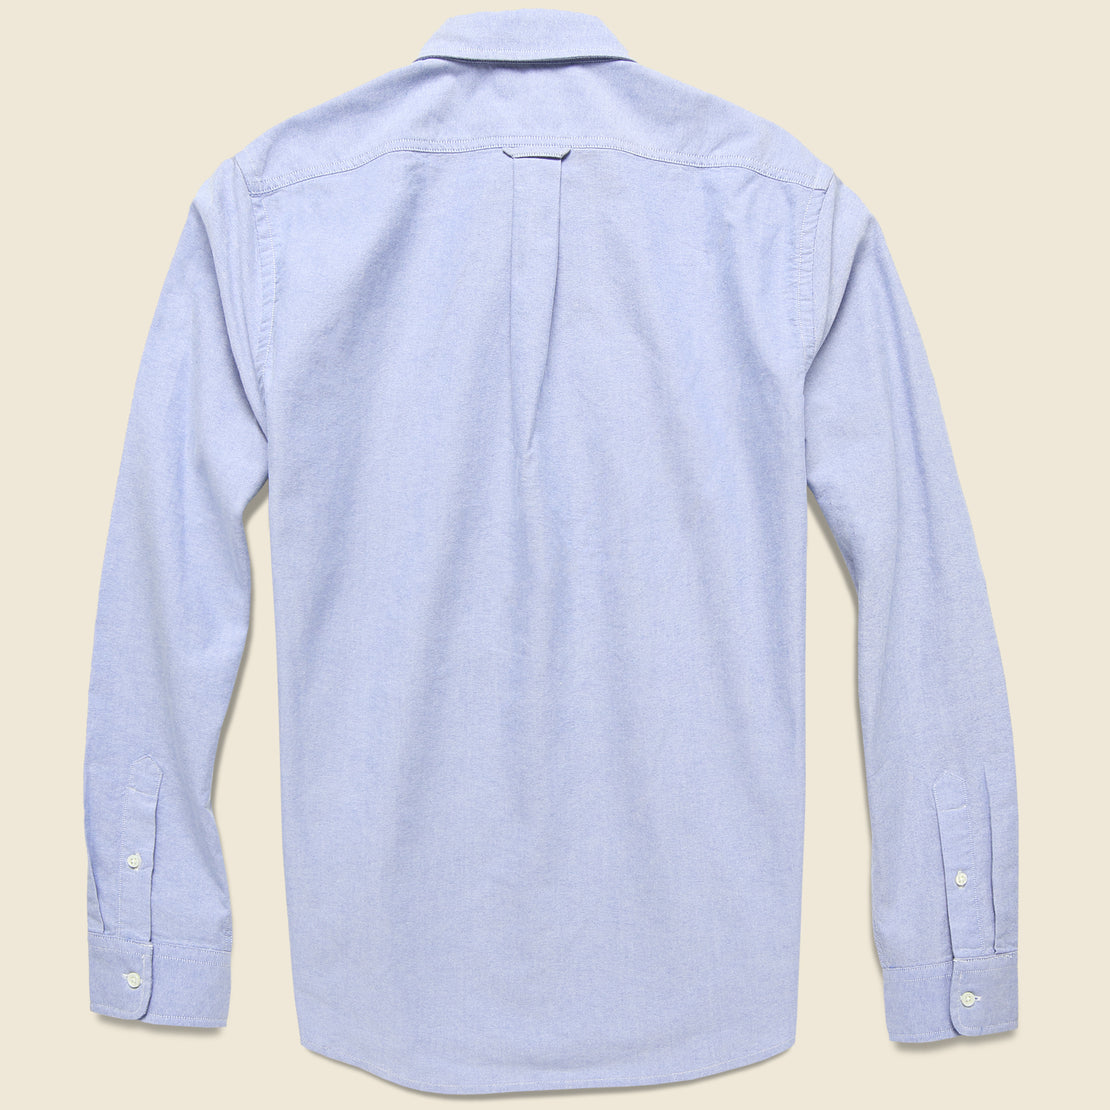 Overdyed Oxford Shirt - Blue